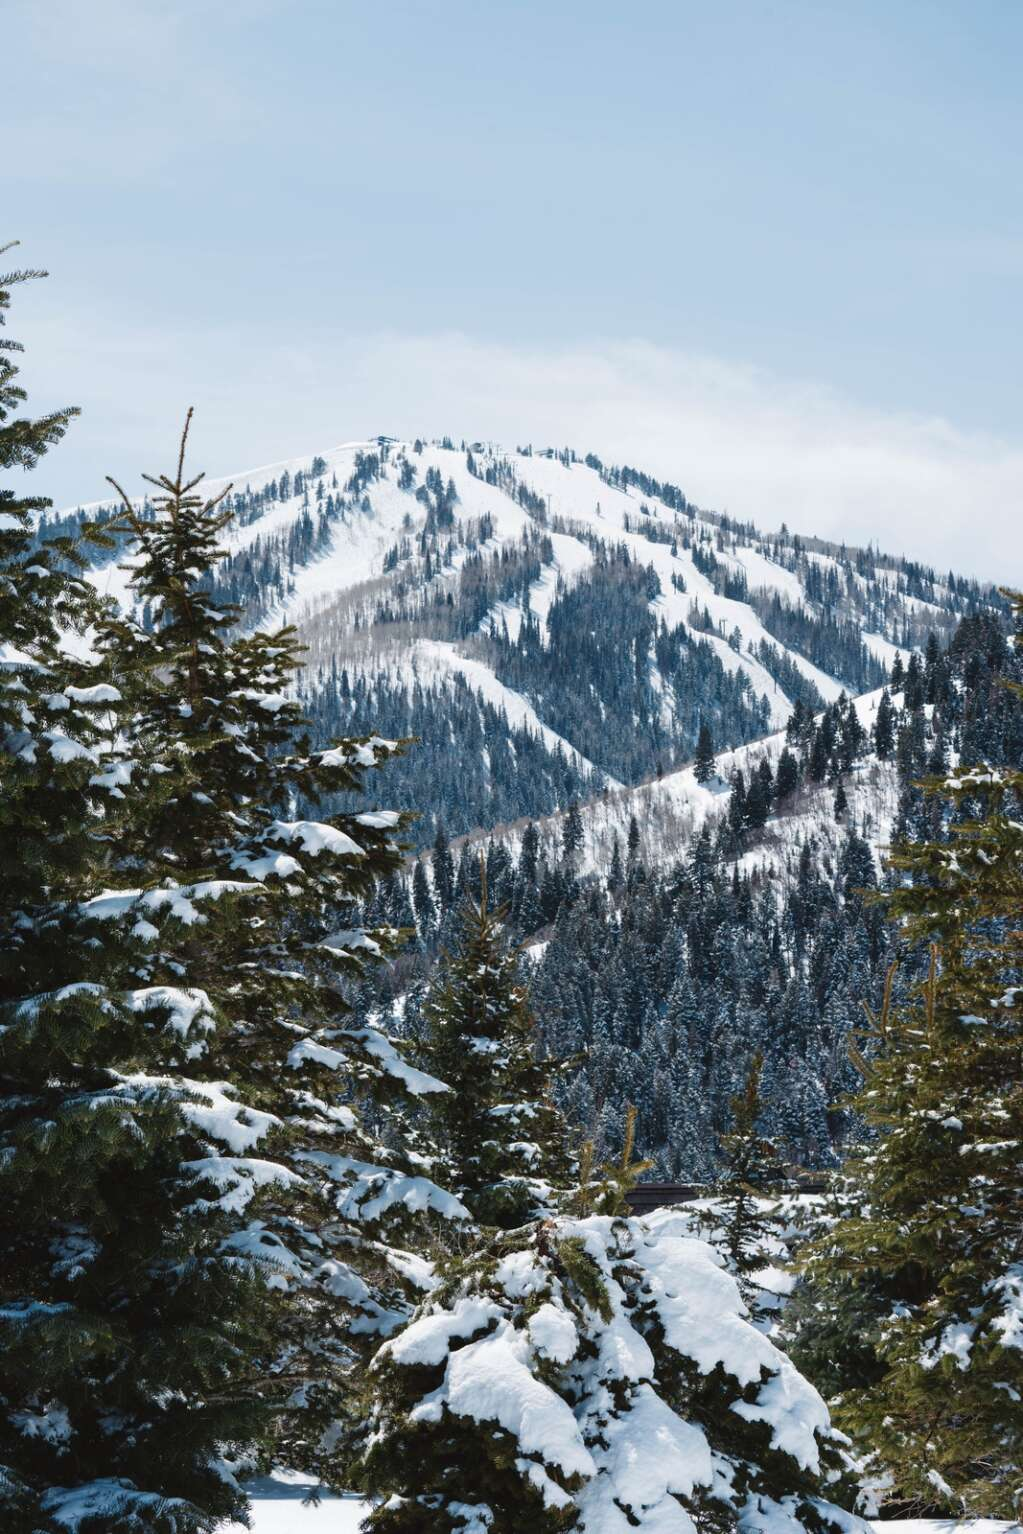 PCMR and Deer Valley, reliant on good snow, outline their sustainability efforts